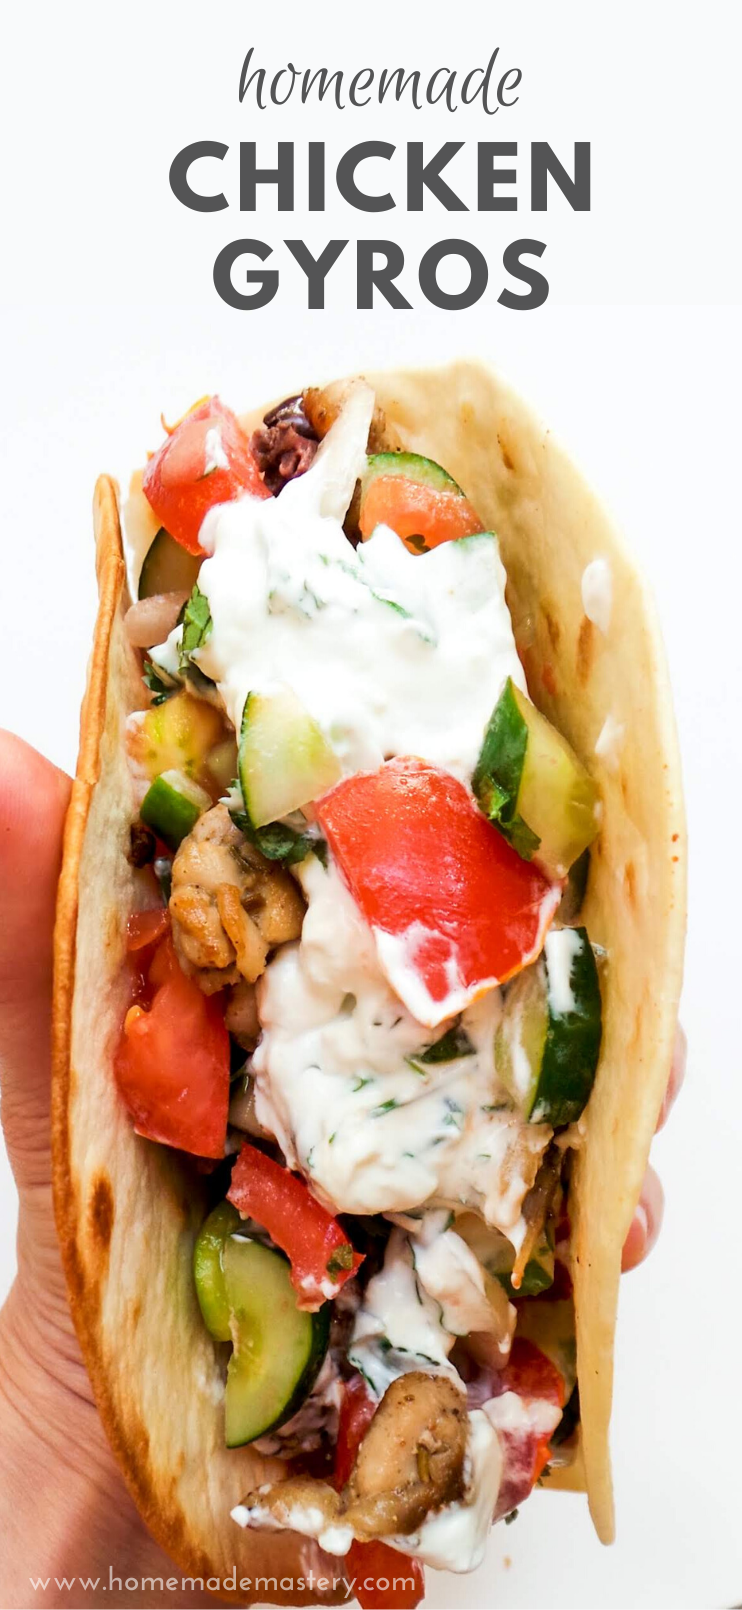 Homemade Chicken Gyros Recipe Meal Prep Option Homemade Mastery